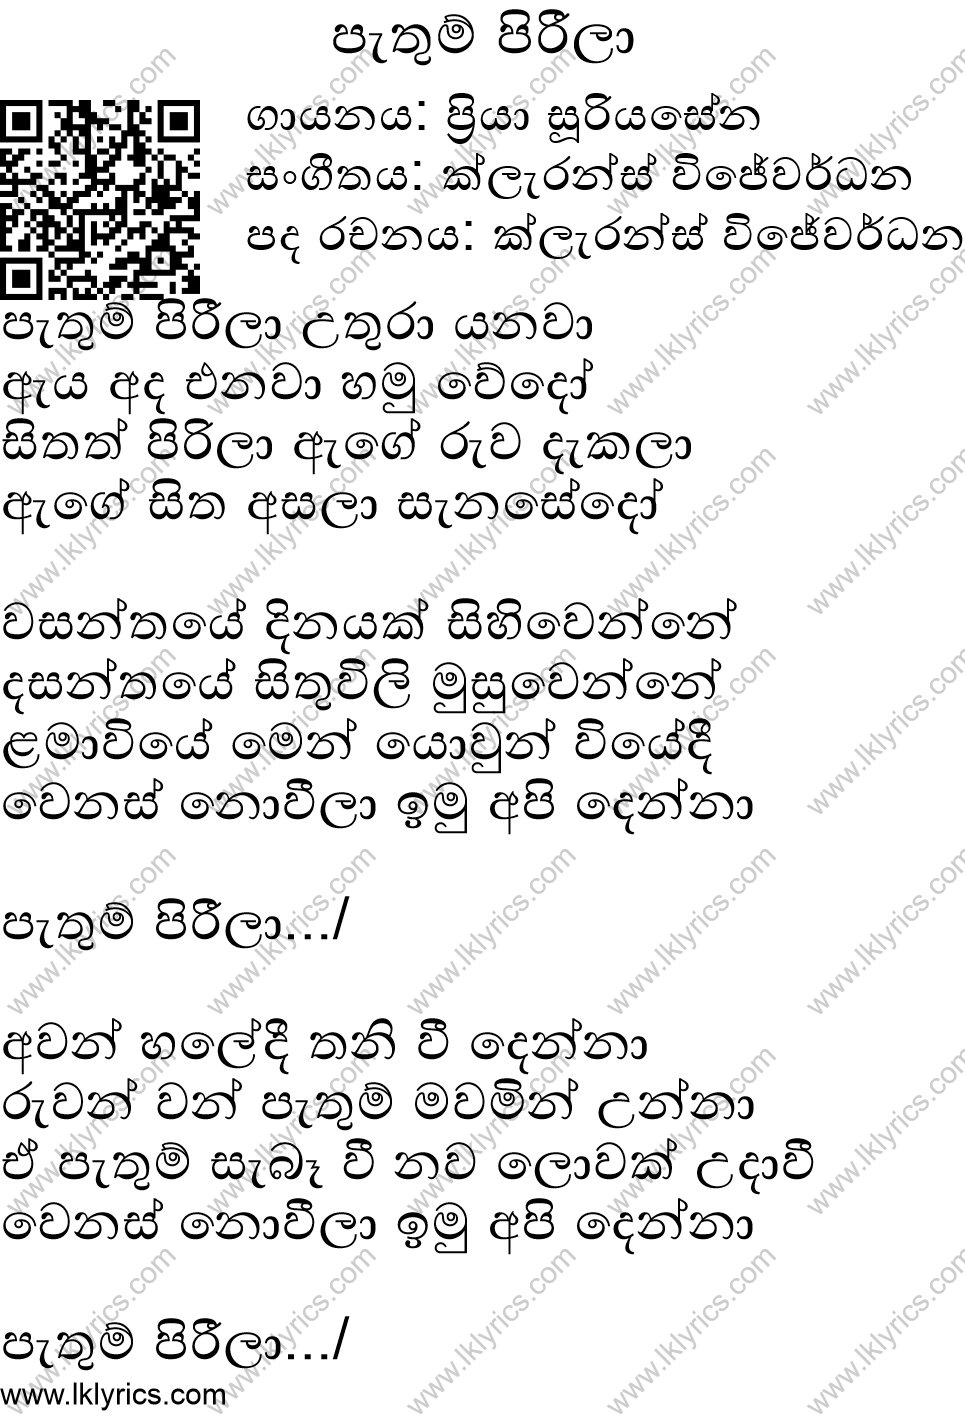 Pem loke pura lyrics